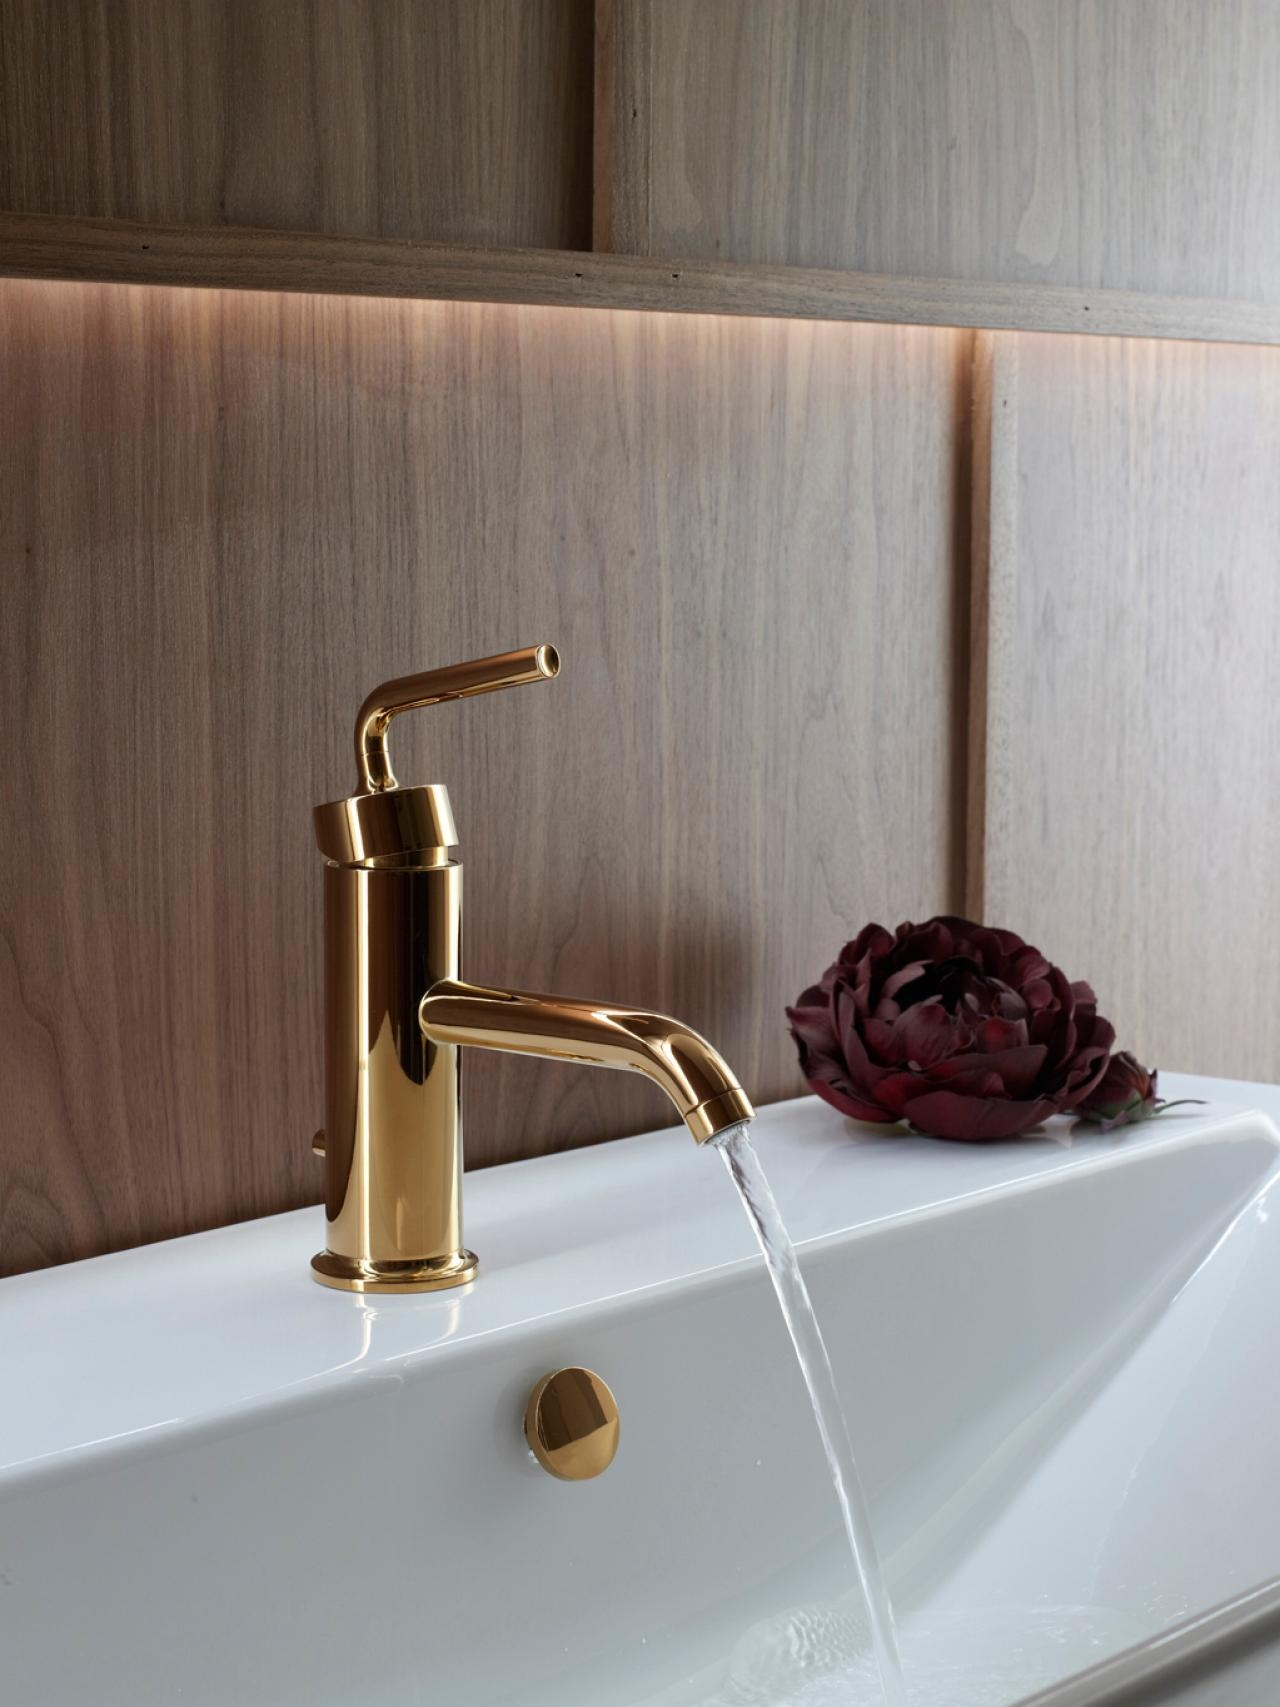 kohler brushed bronze bathroom faucets kohler brushed bronze bathroom faucets bath shower fabulous bathroom faucets for modern bathroom 1280 x 1707 jpeg